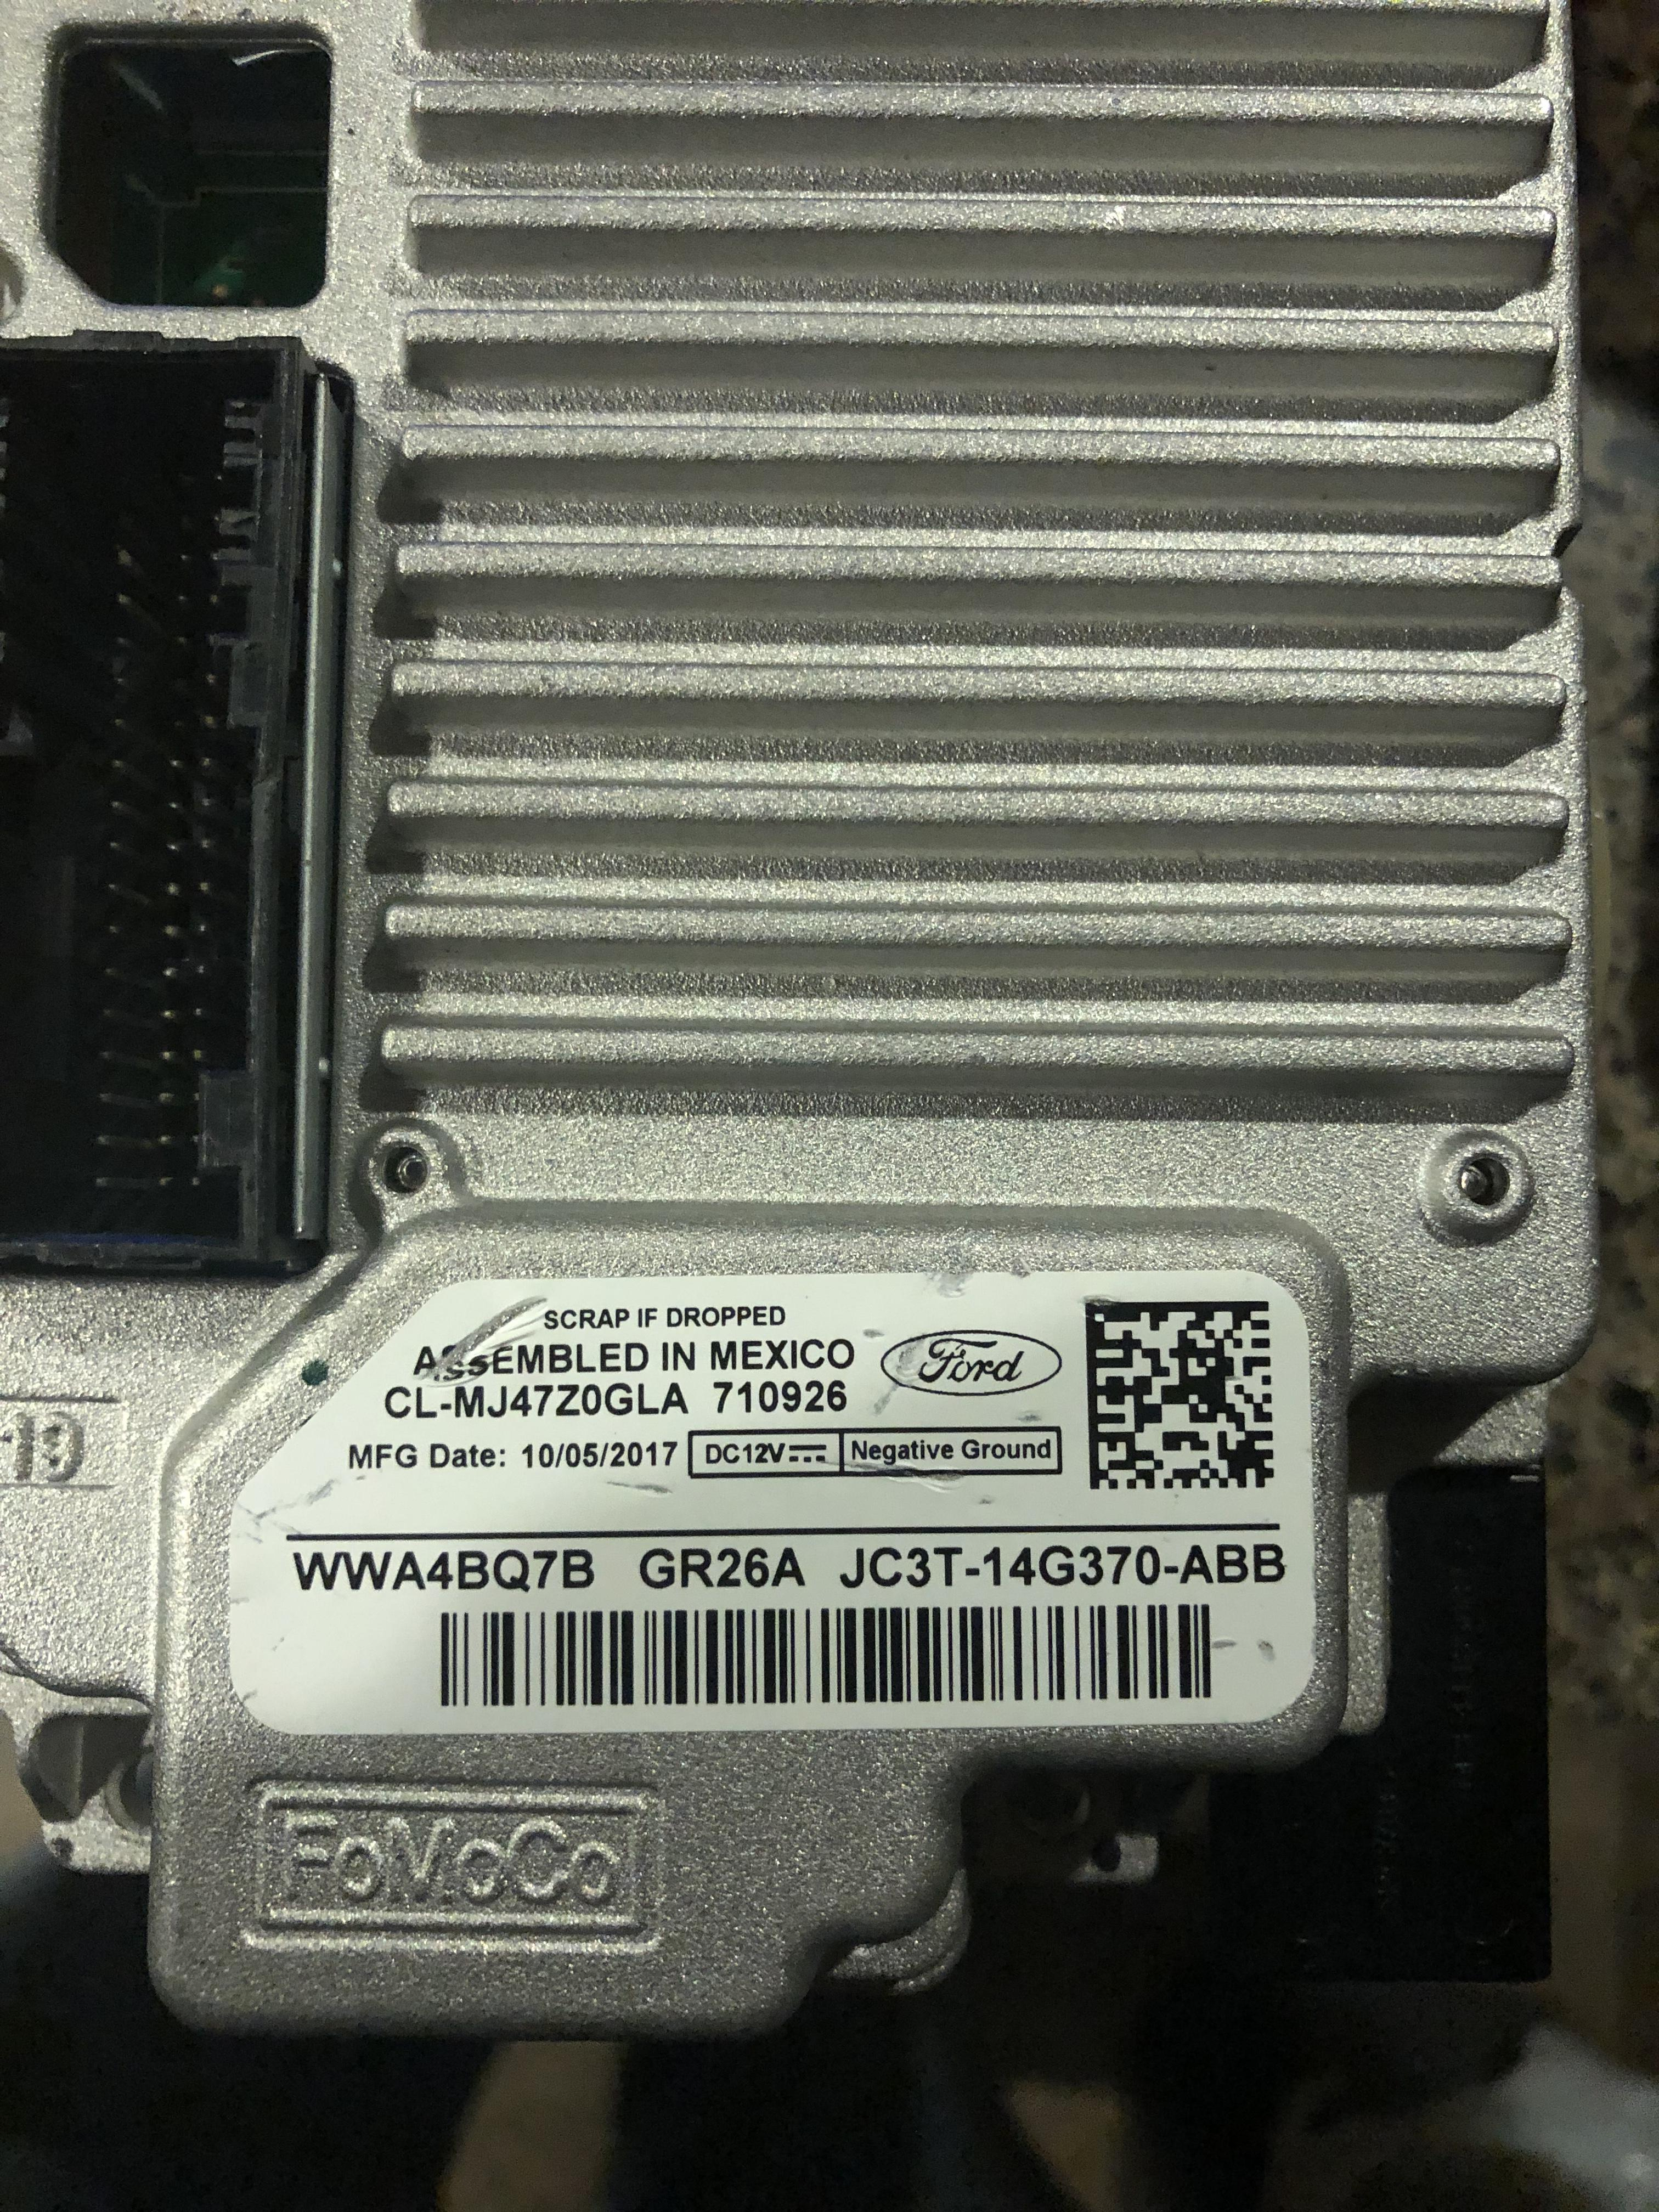 Upgrade to Sync 3 - Page 11 - Ford Powerstroke Diesel Forum